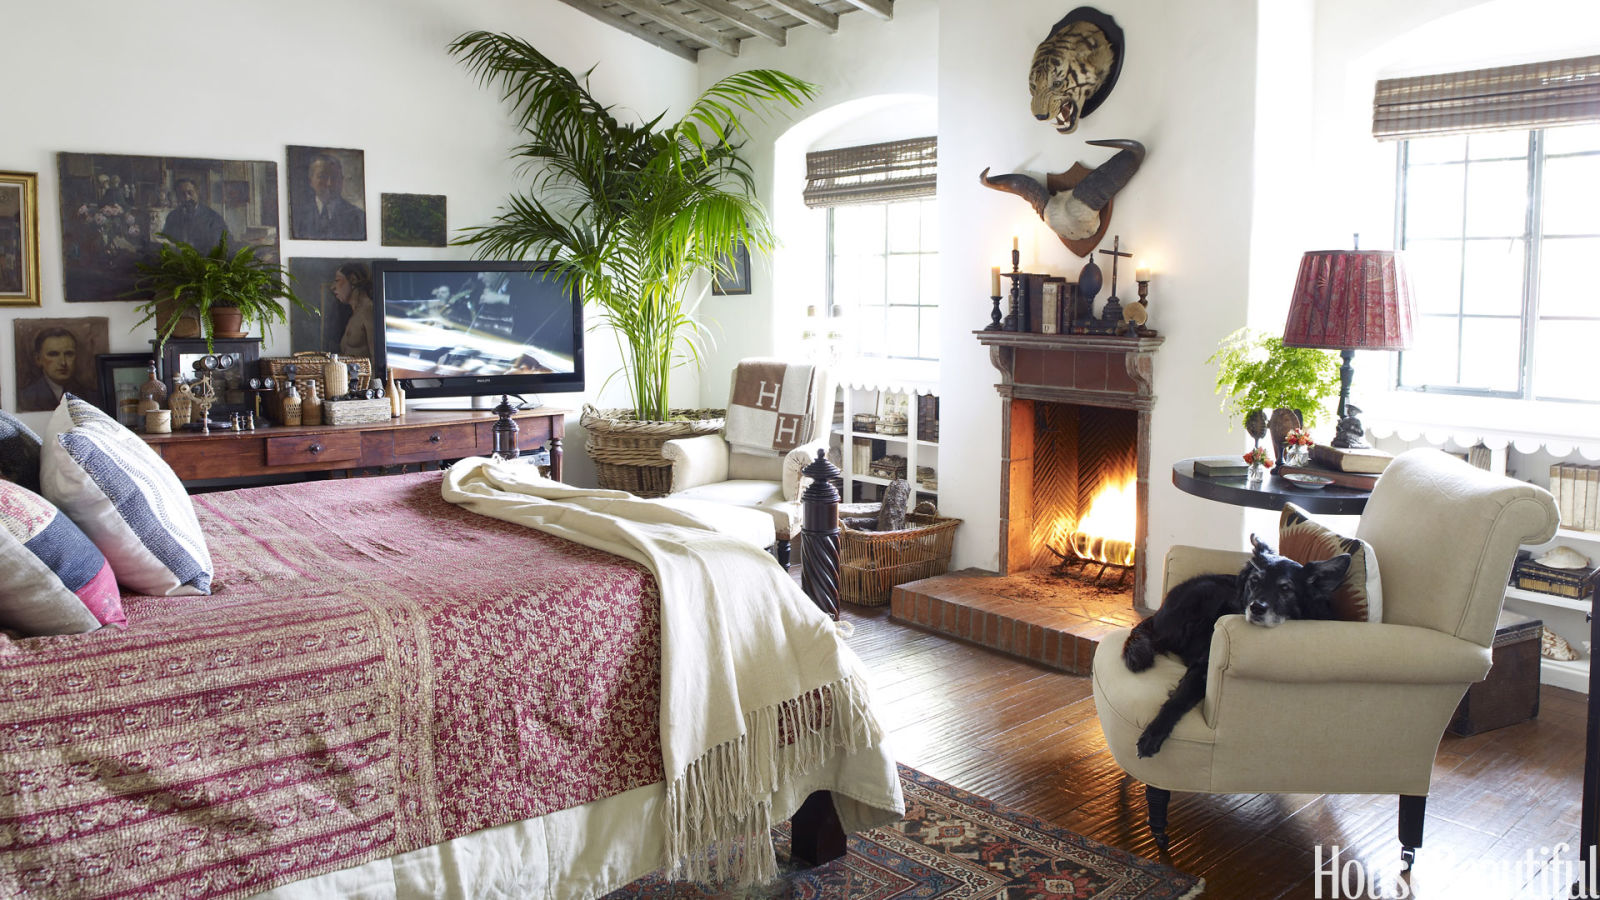 25 Cozy Bedroom Ideas